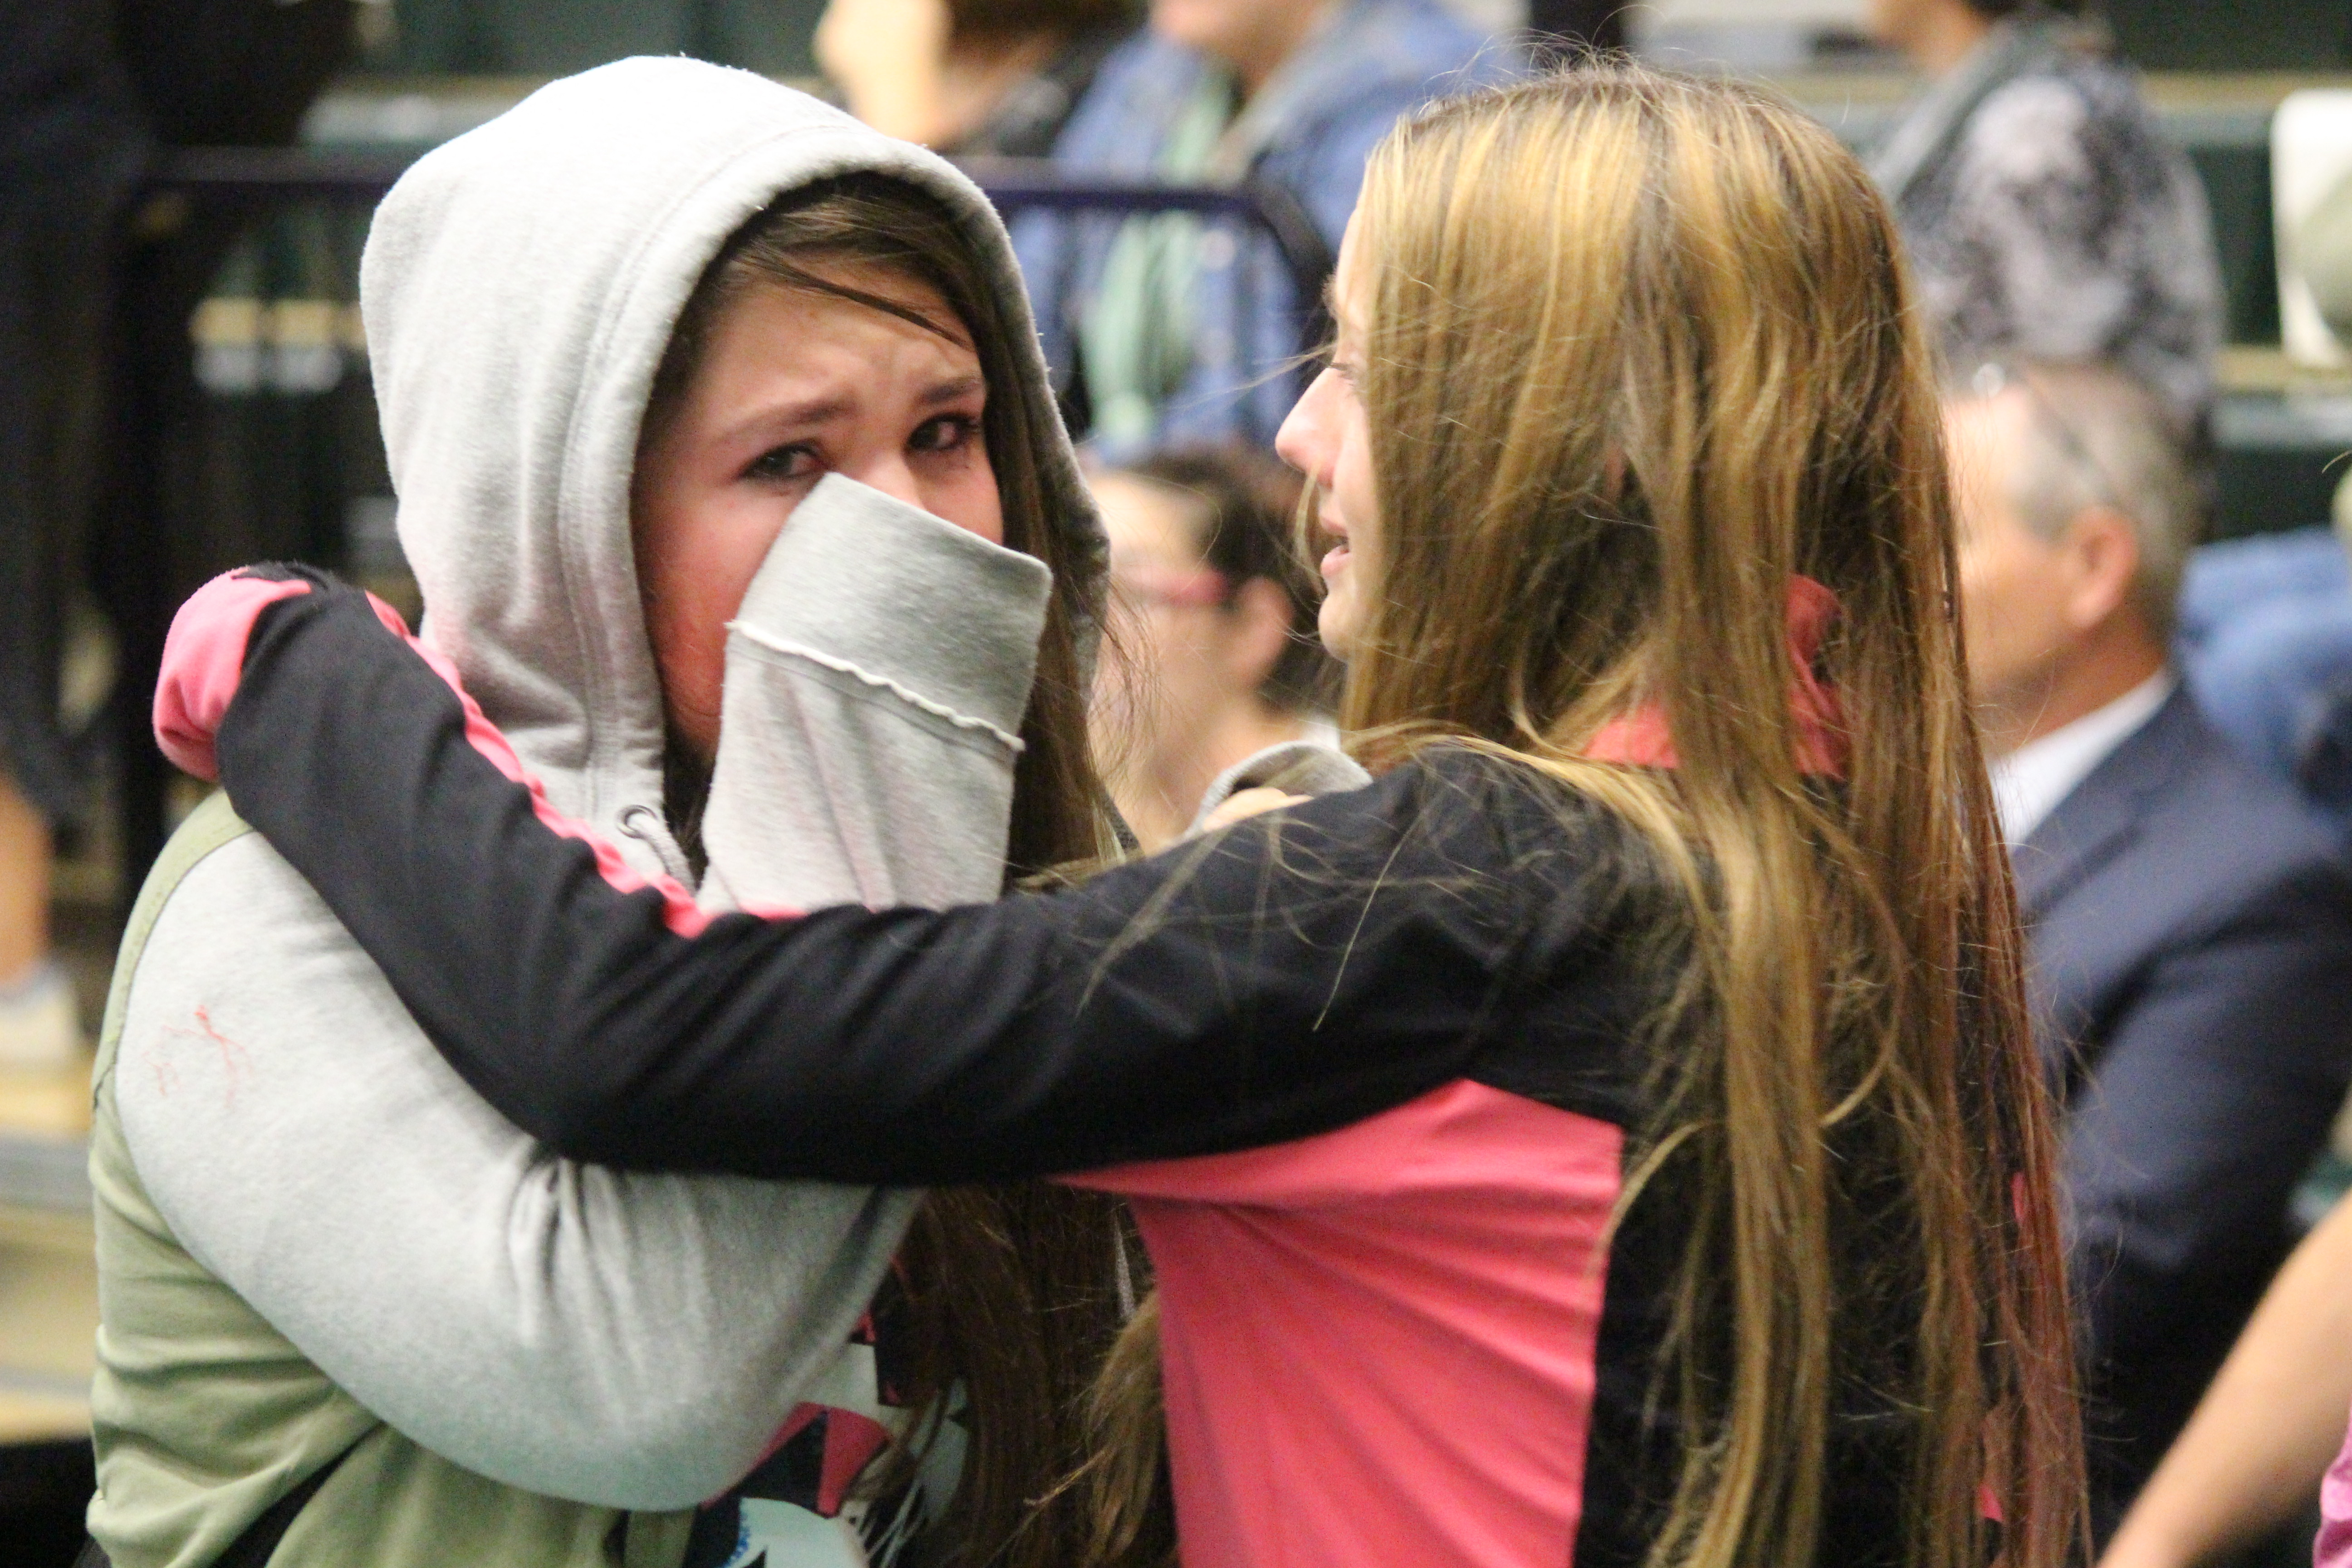 Harrow District High School students left in tears October 13, 2015 after learning their school will close. (Photo by Jason Viau)